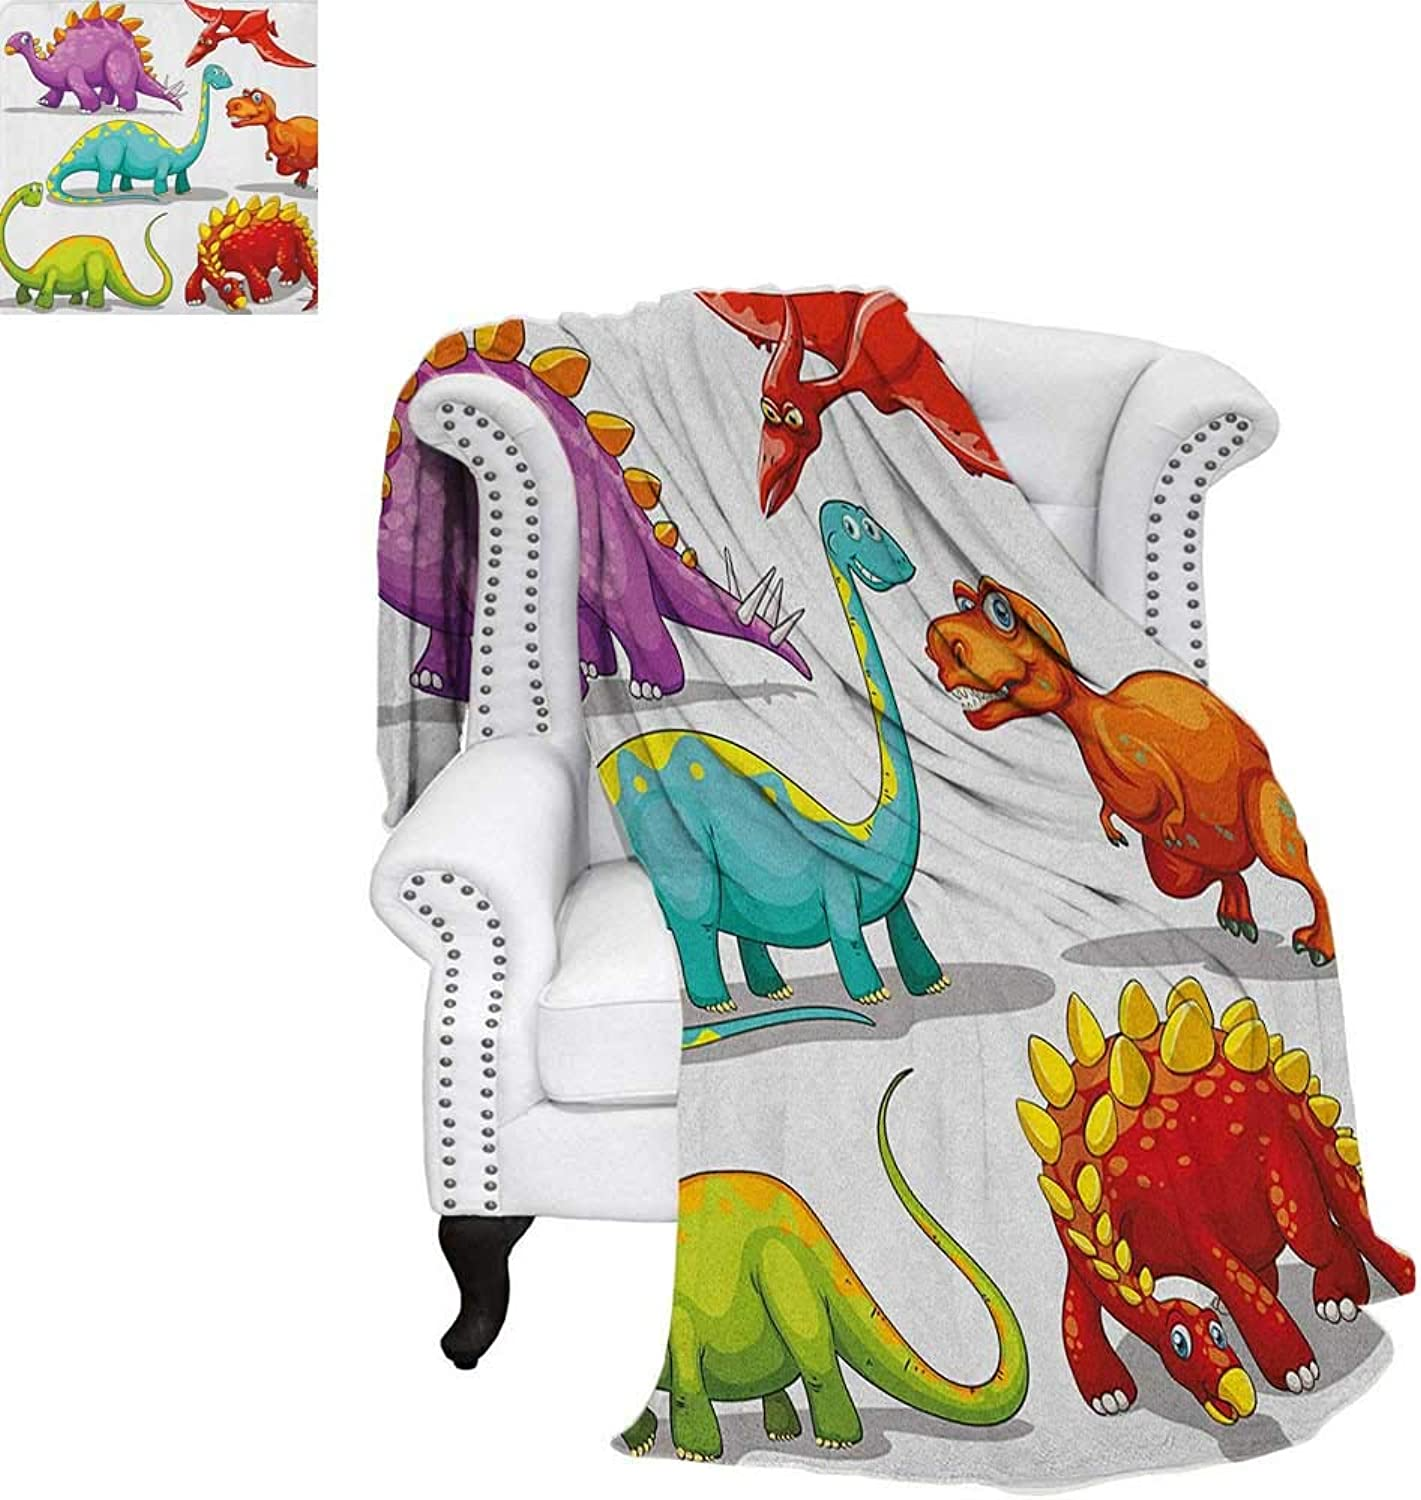 Dinosaurfluffy blanketcolorful Funny Different Dino Collection Friendly Wildlife Extinct Animals Ice Agebed Blanket 60 x50  Multicolor